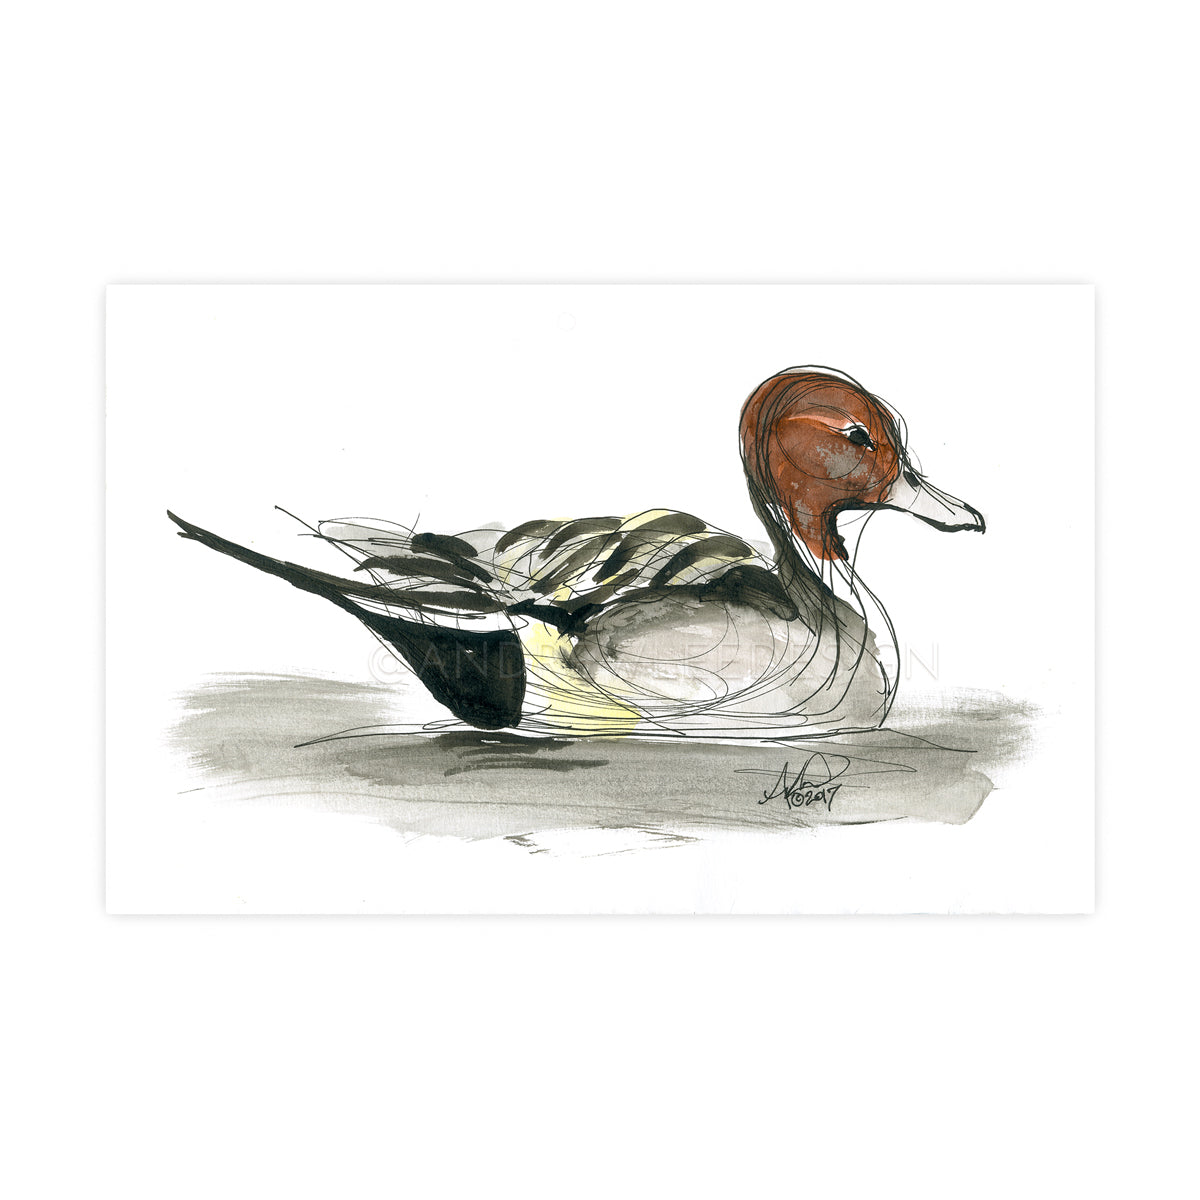 Pintail, Loose ink sketch study